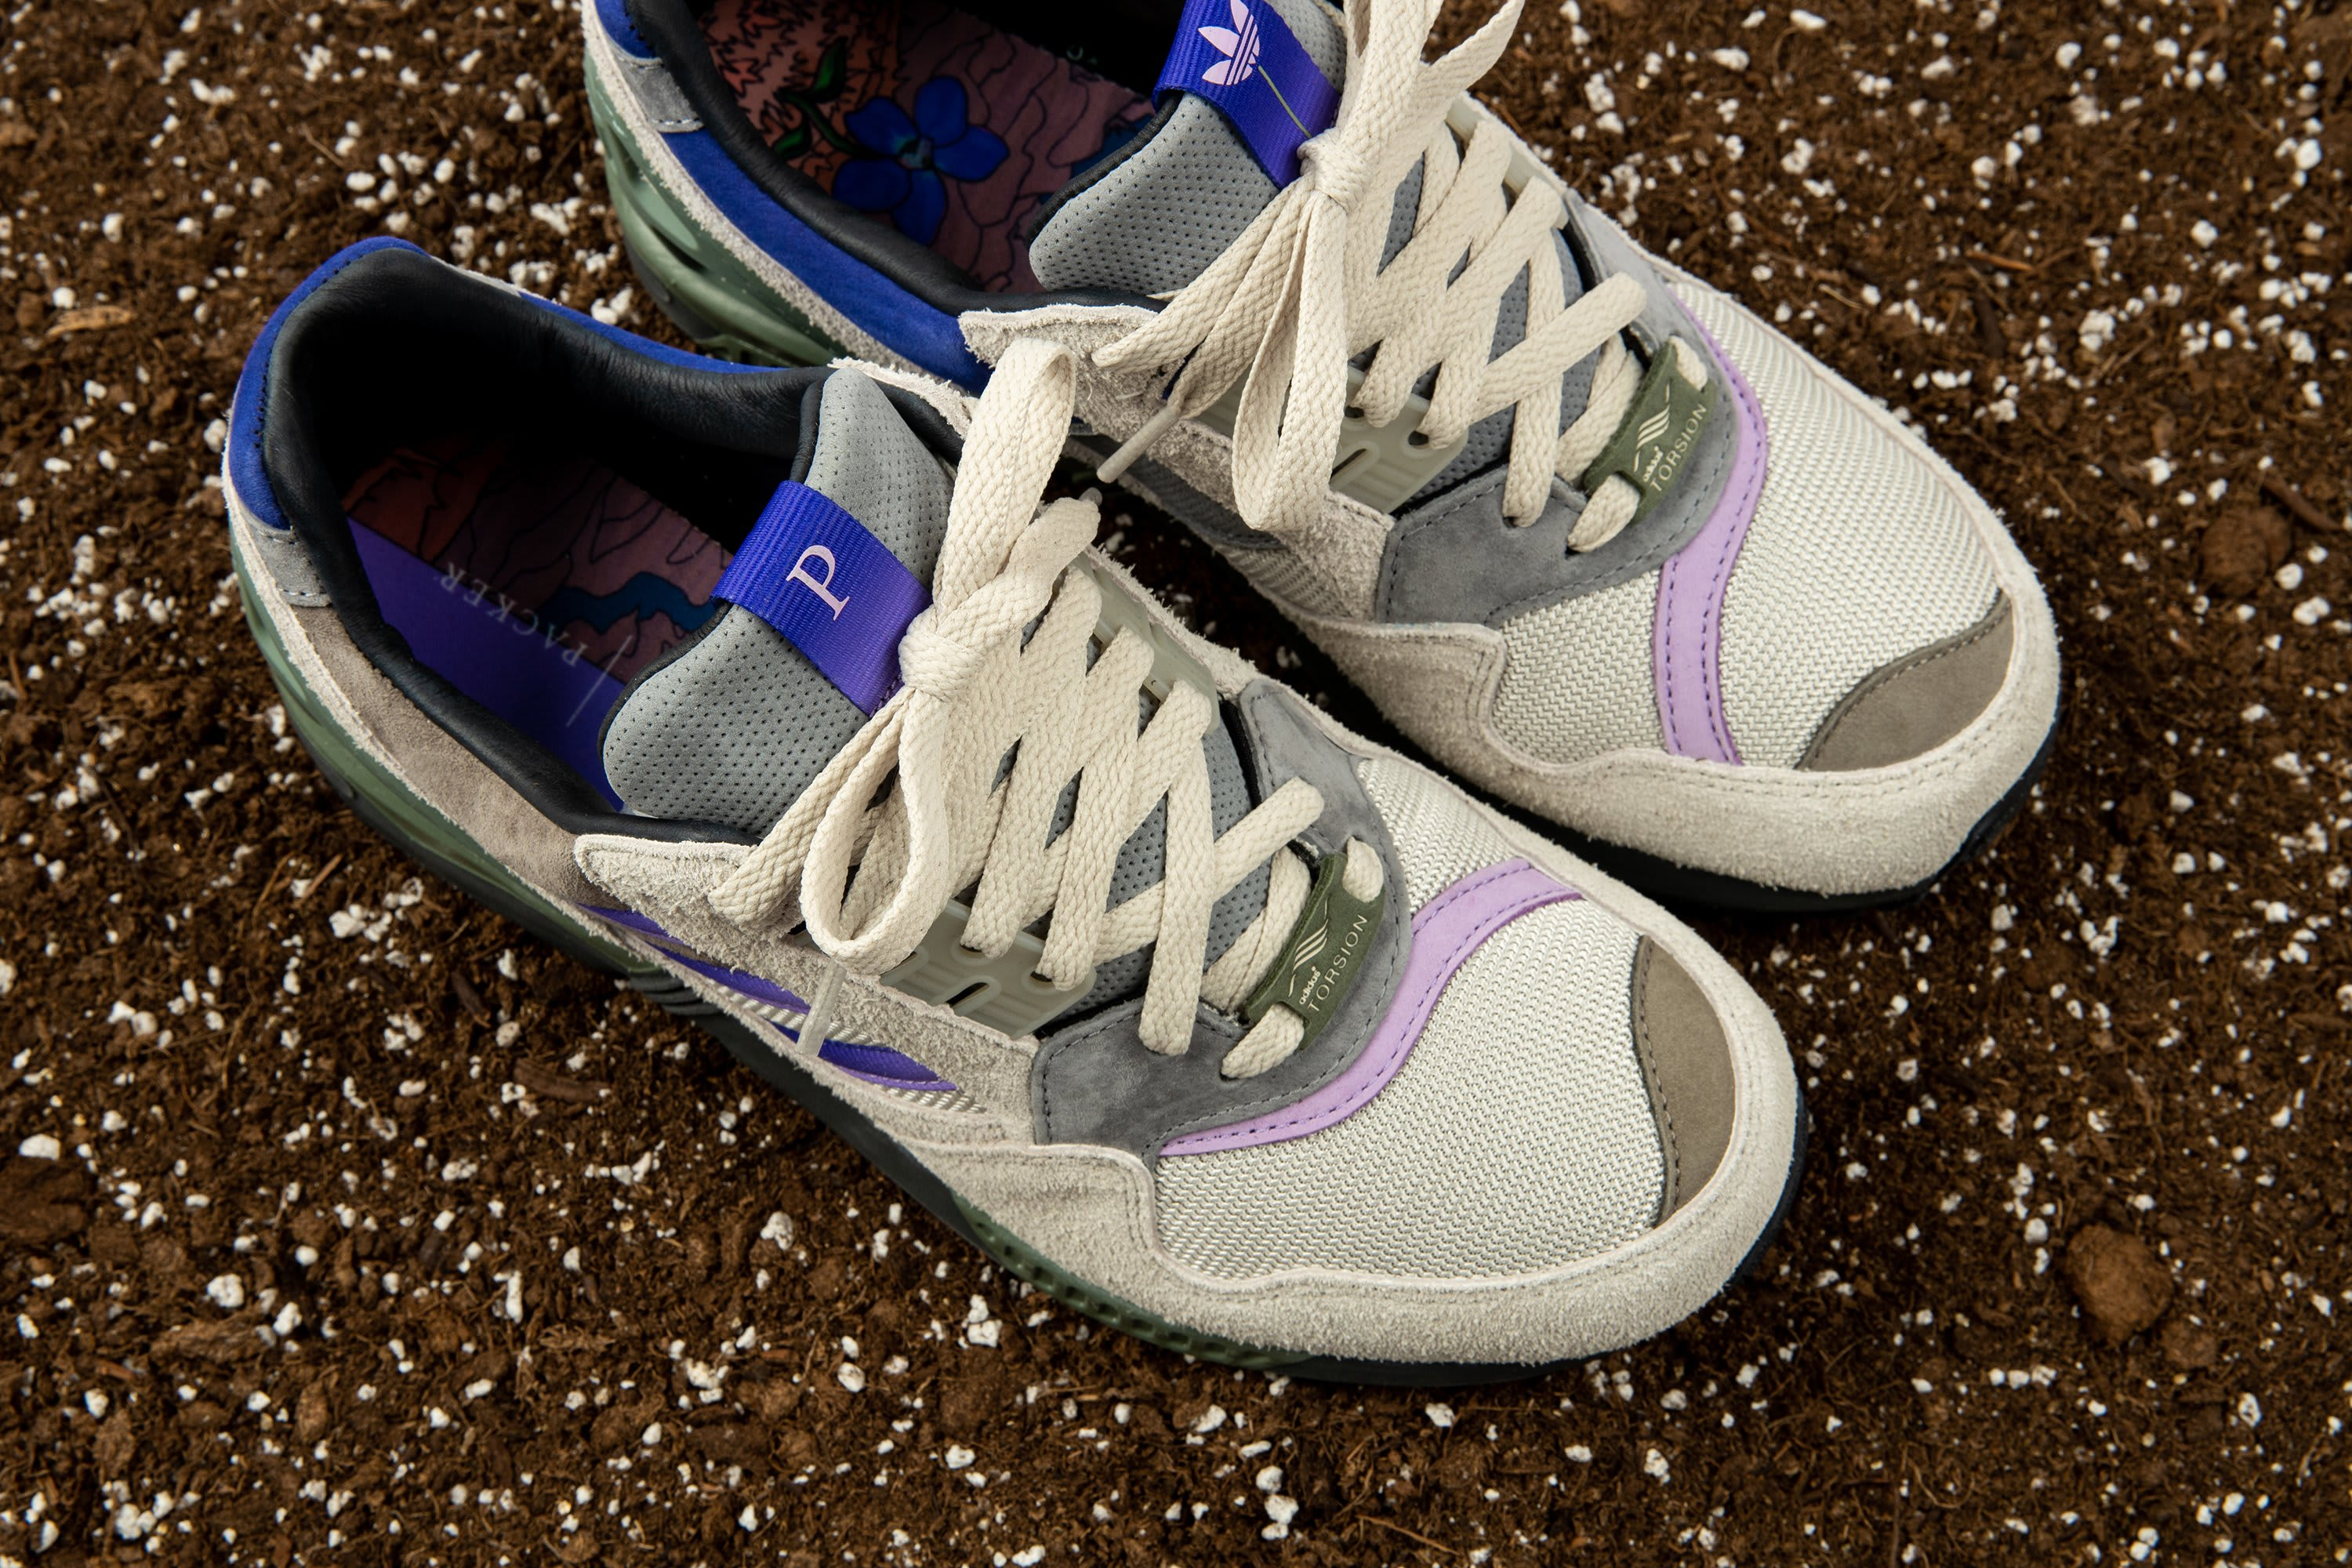 packer-shoes-adidas-consortium-zx-9000-meadow-violet-top